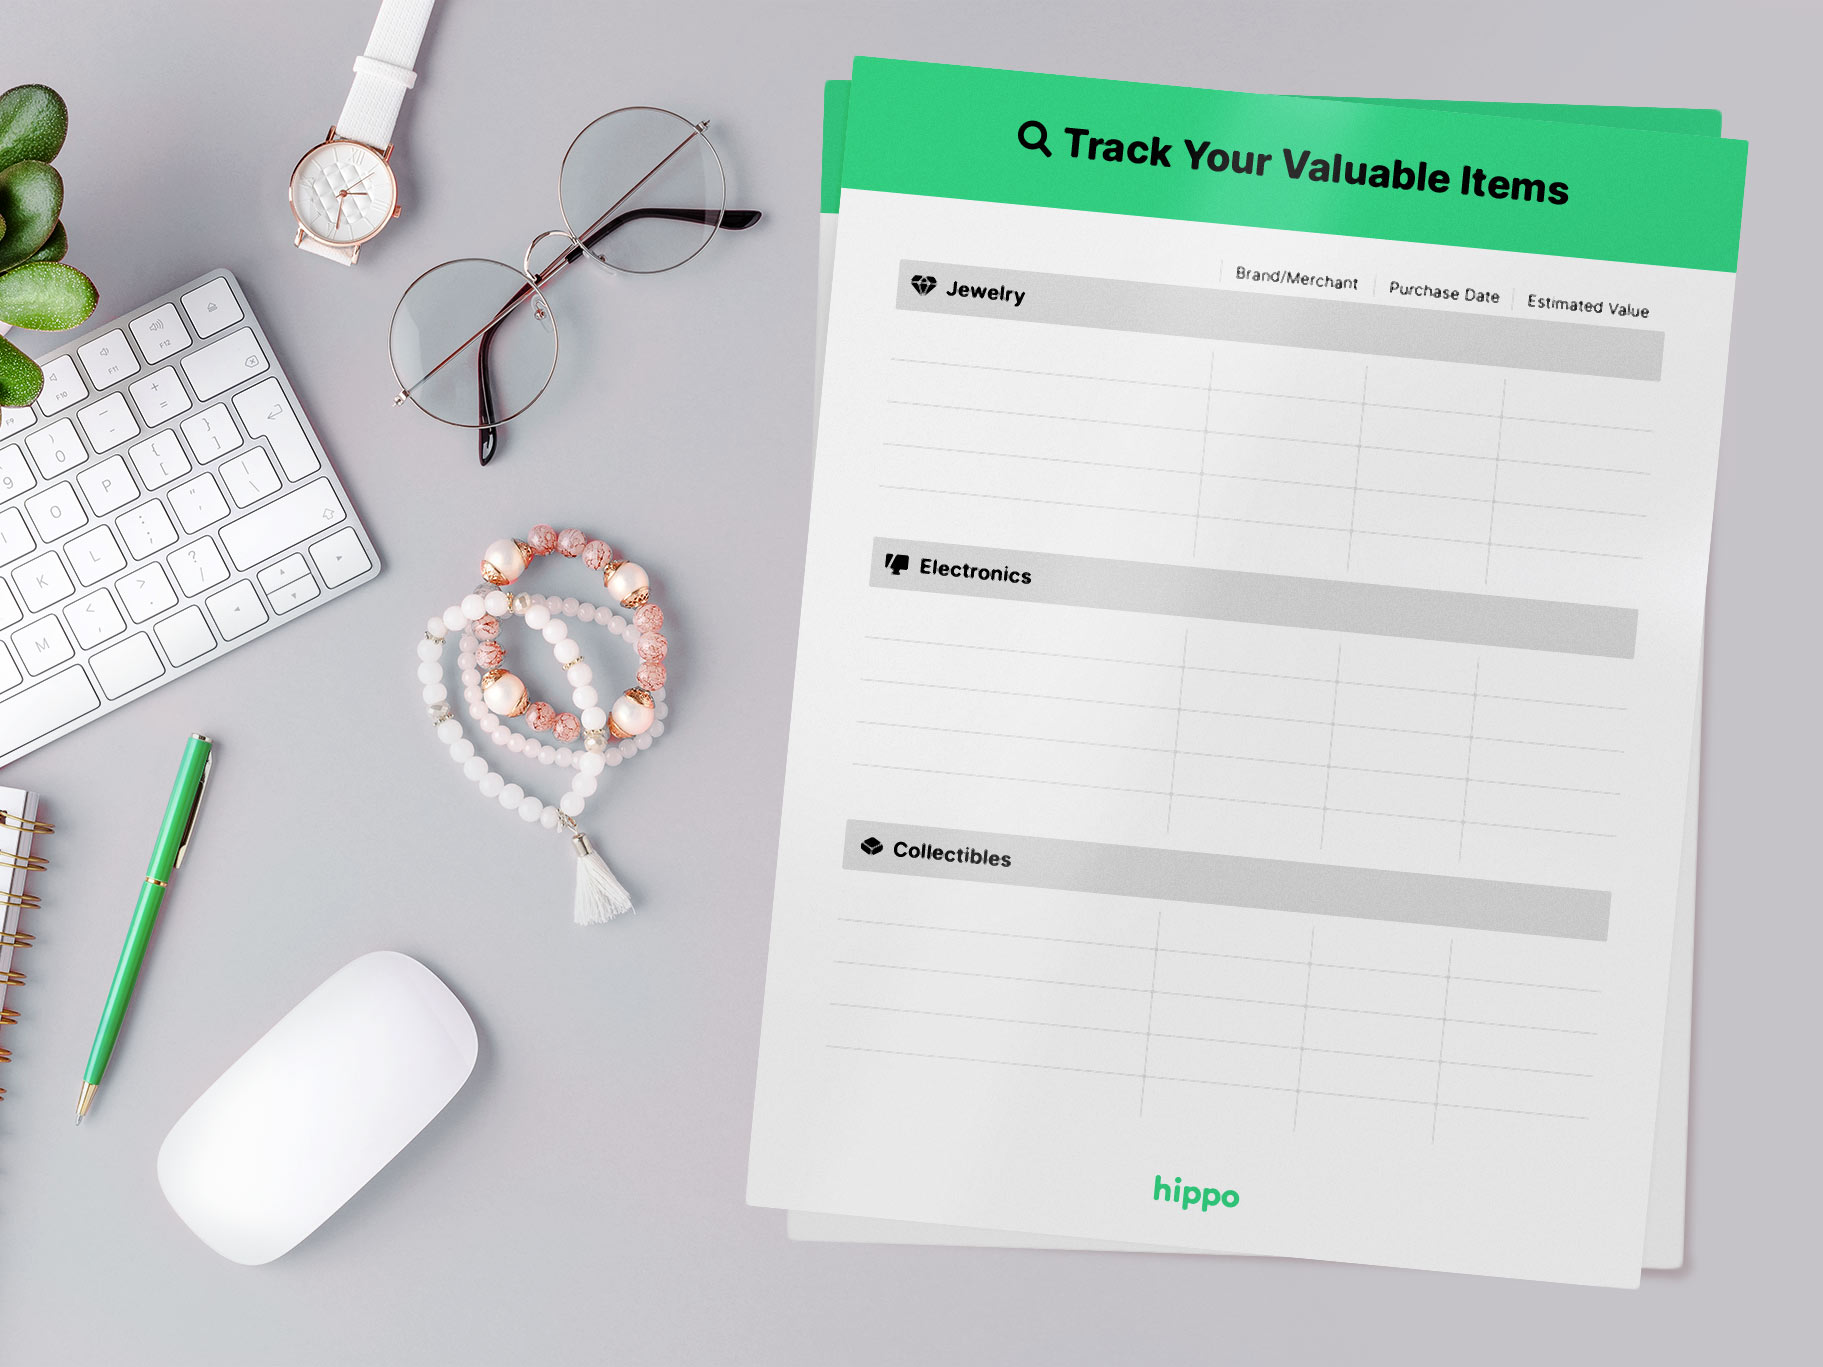 valuable items tracker on a desk